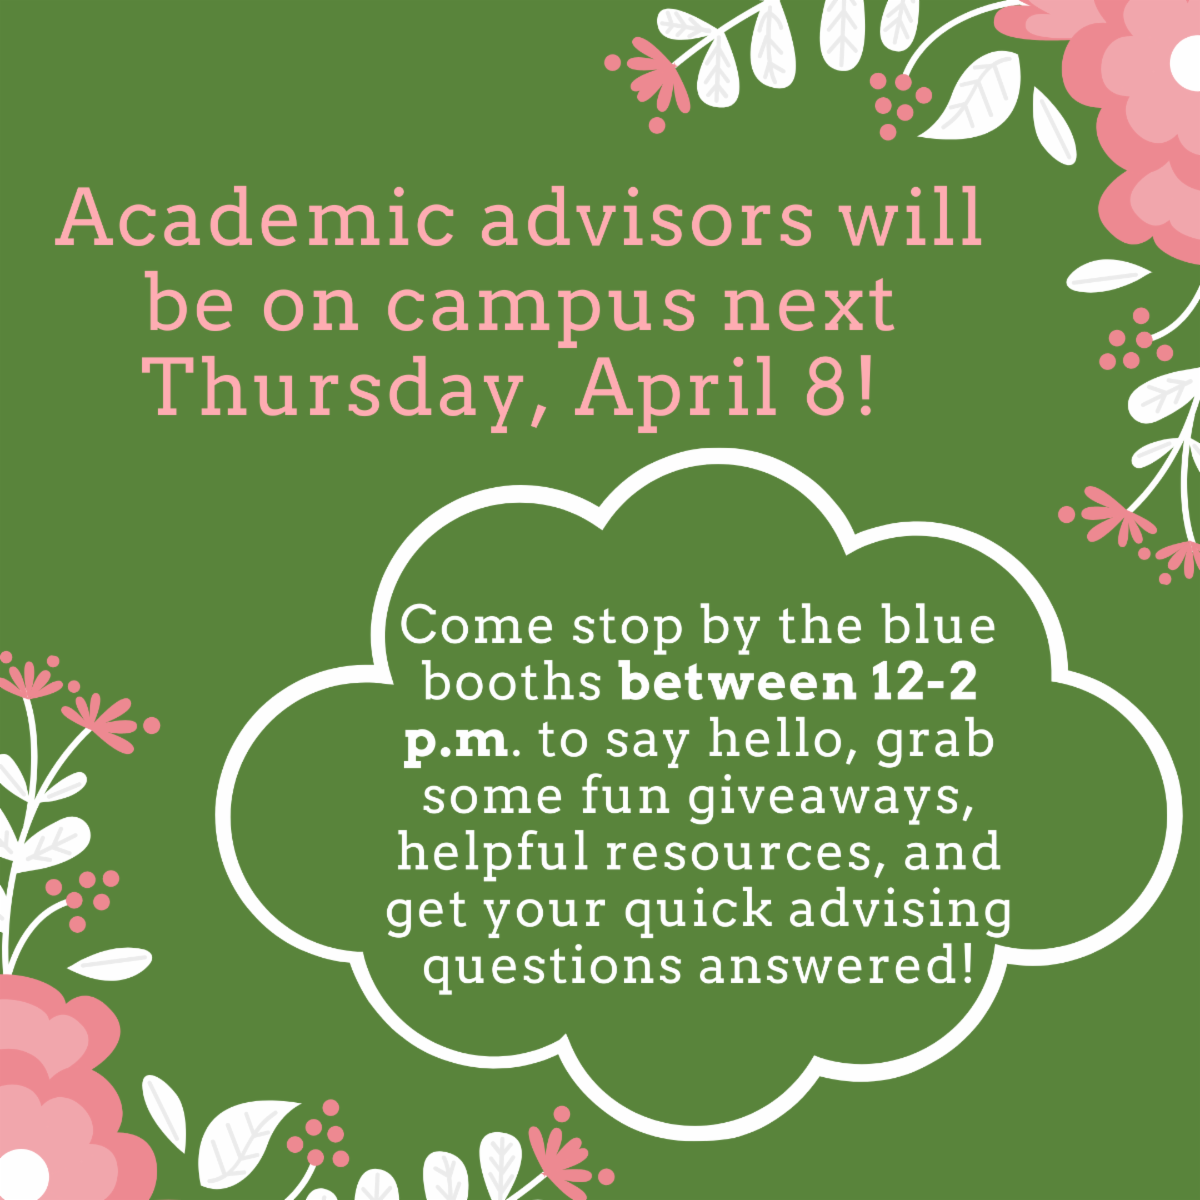 Pink and white flowers on an olive background featuring text academic advisors are on campus thursday april 8.  stop by the blue booths between 12 and 2 to say hi grab  fun giveaways helpful resources and get your quick advising questions answered